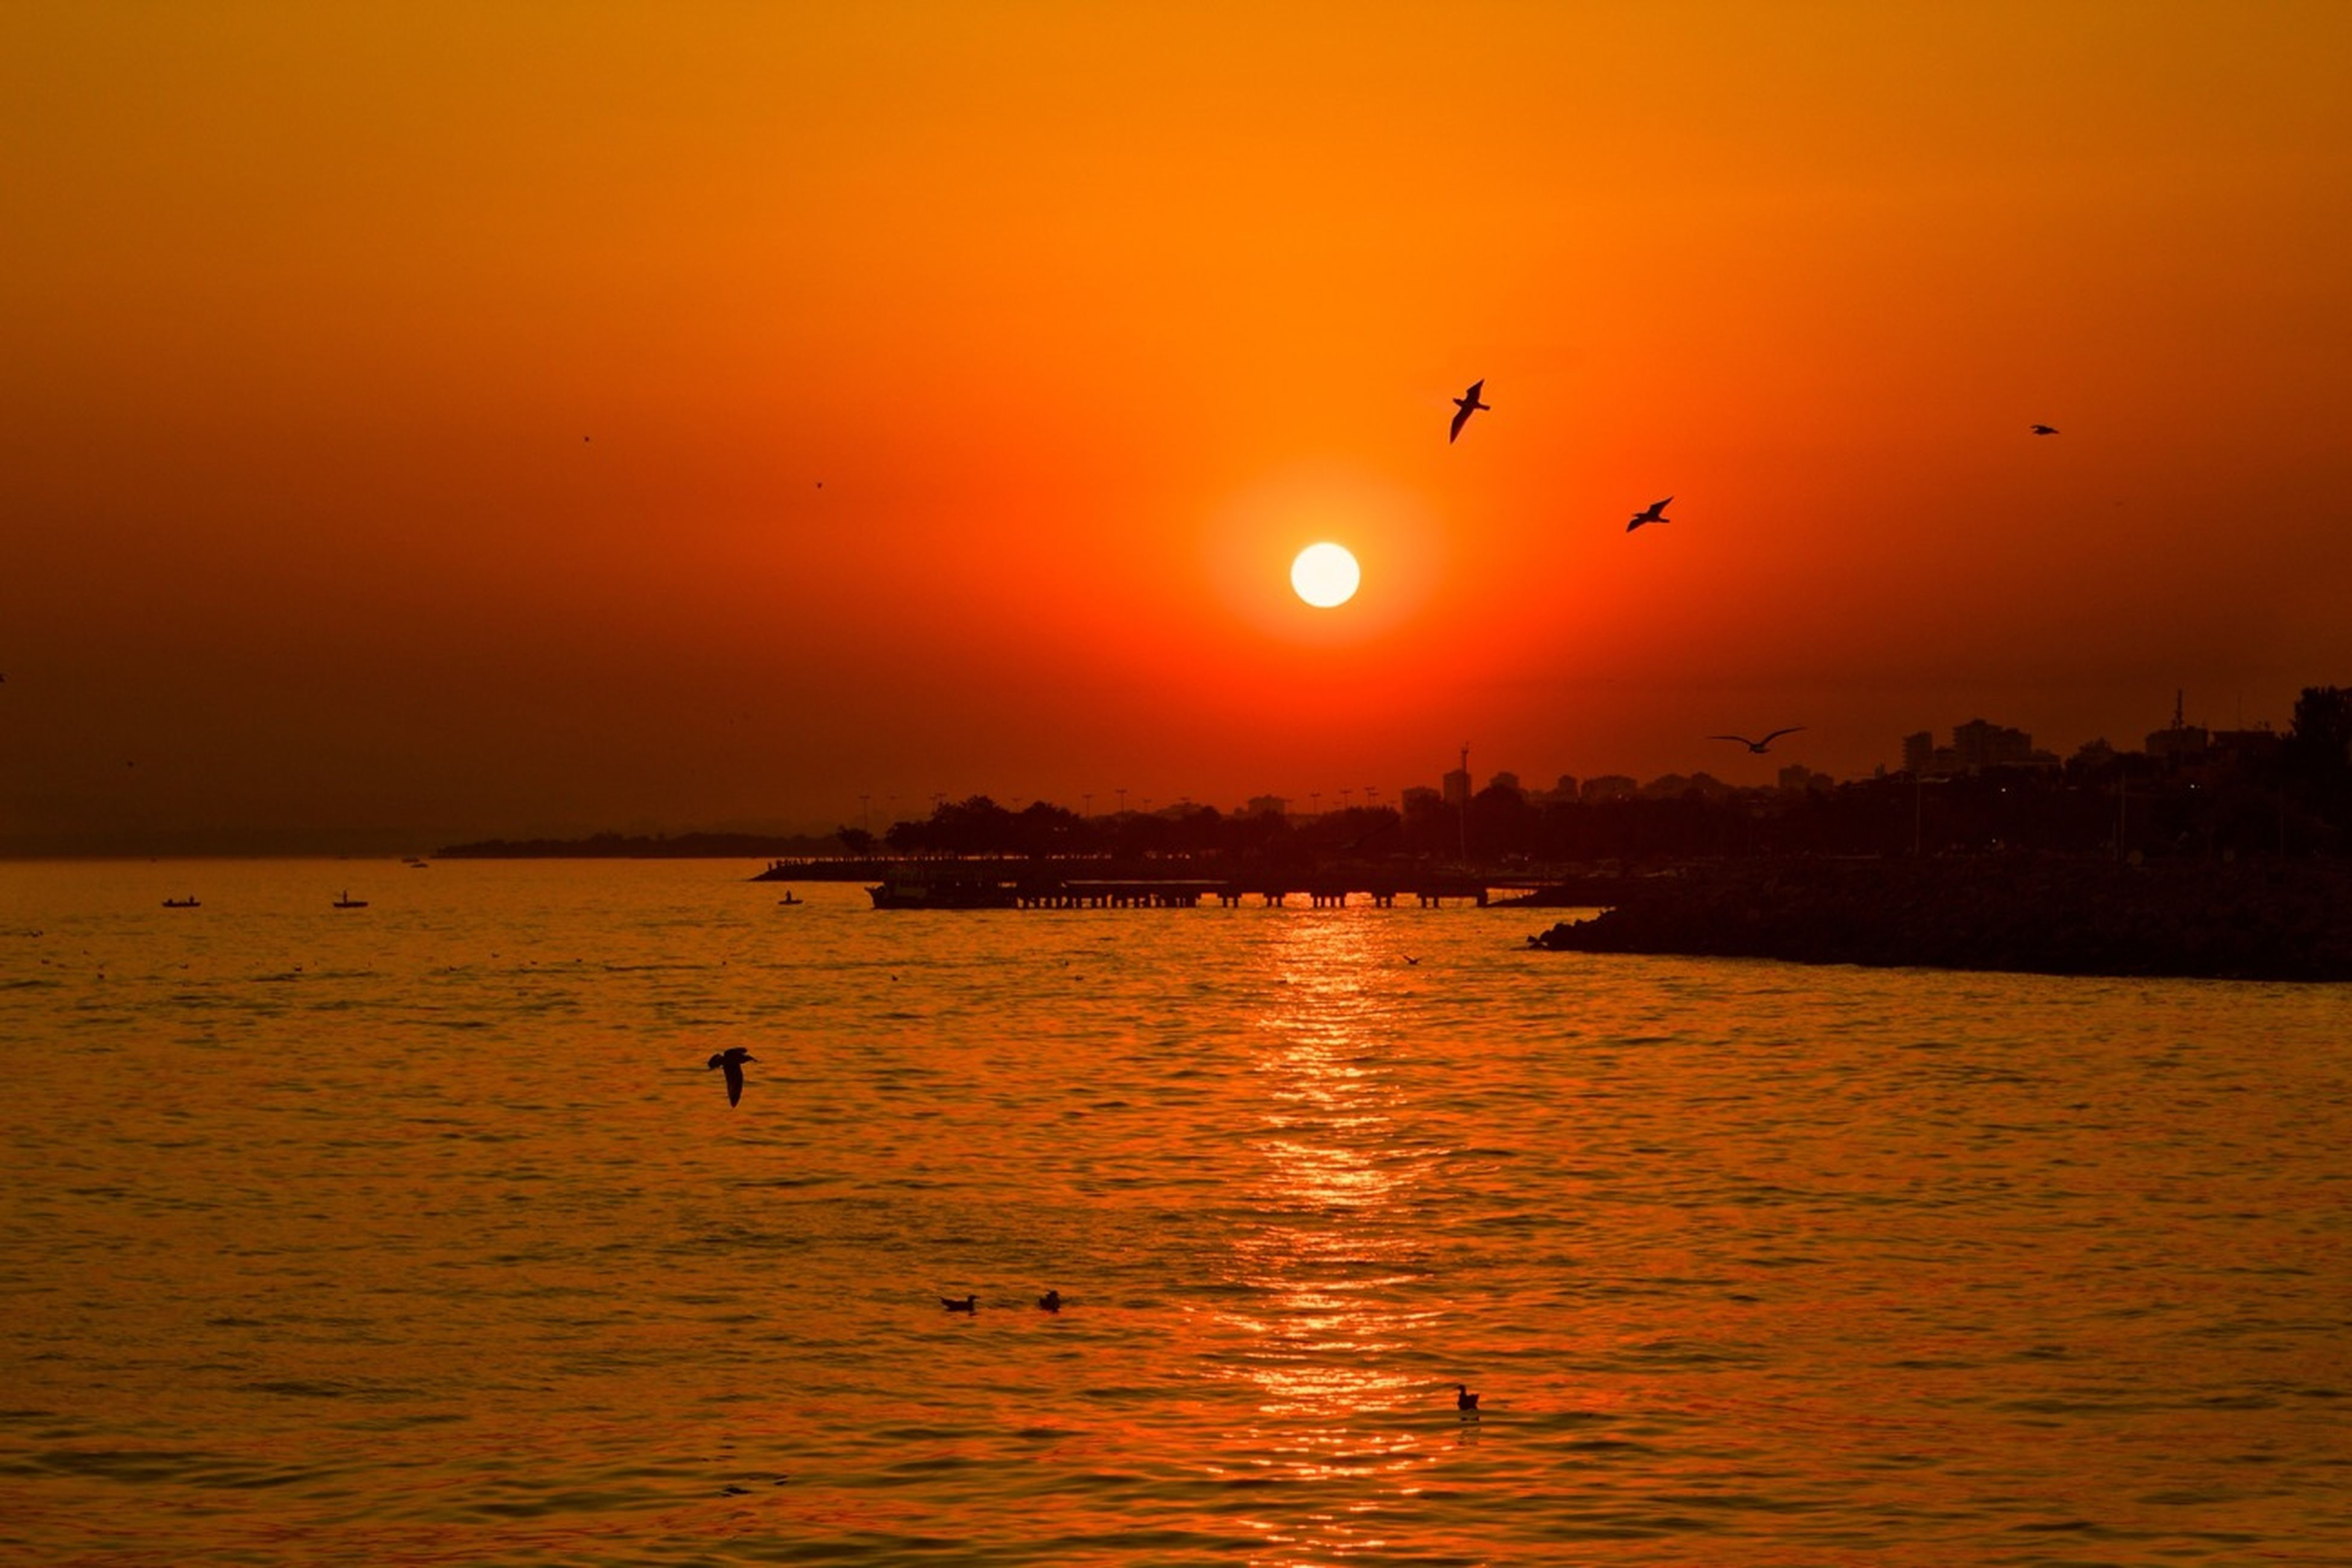 sunset, bird, water, sun, orange color, animal themes, sea, flying, scenics, wildlife, animals in the wild, waterfront, silhouette, tranquil scene, beauty in nature, tranquility, idyllic, reflection, nature, sky